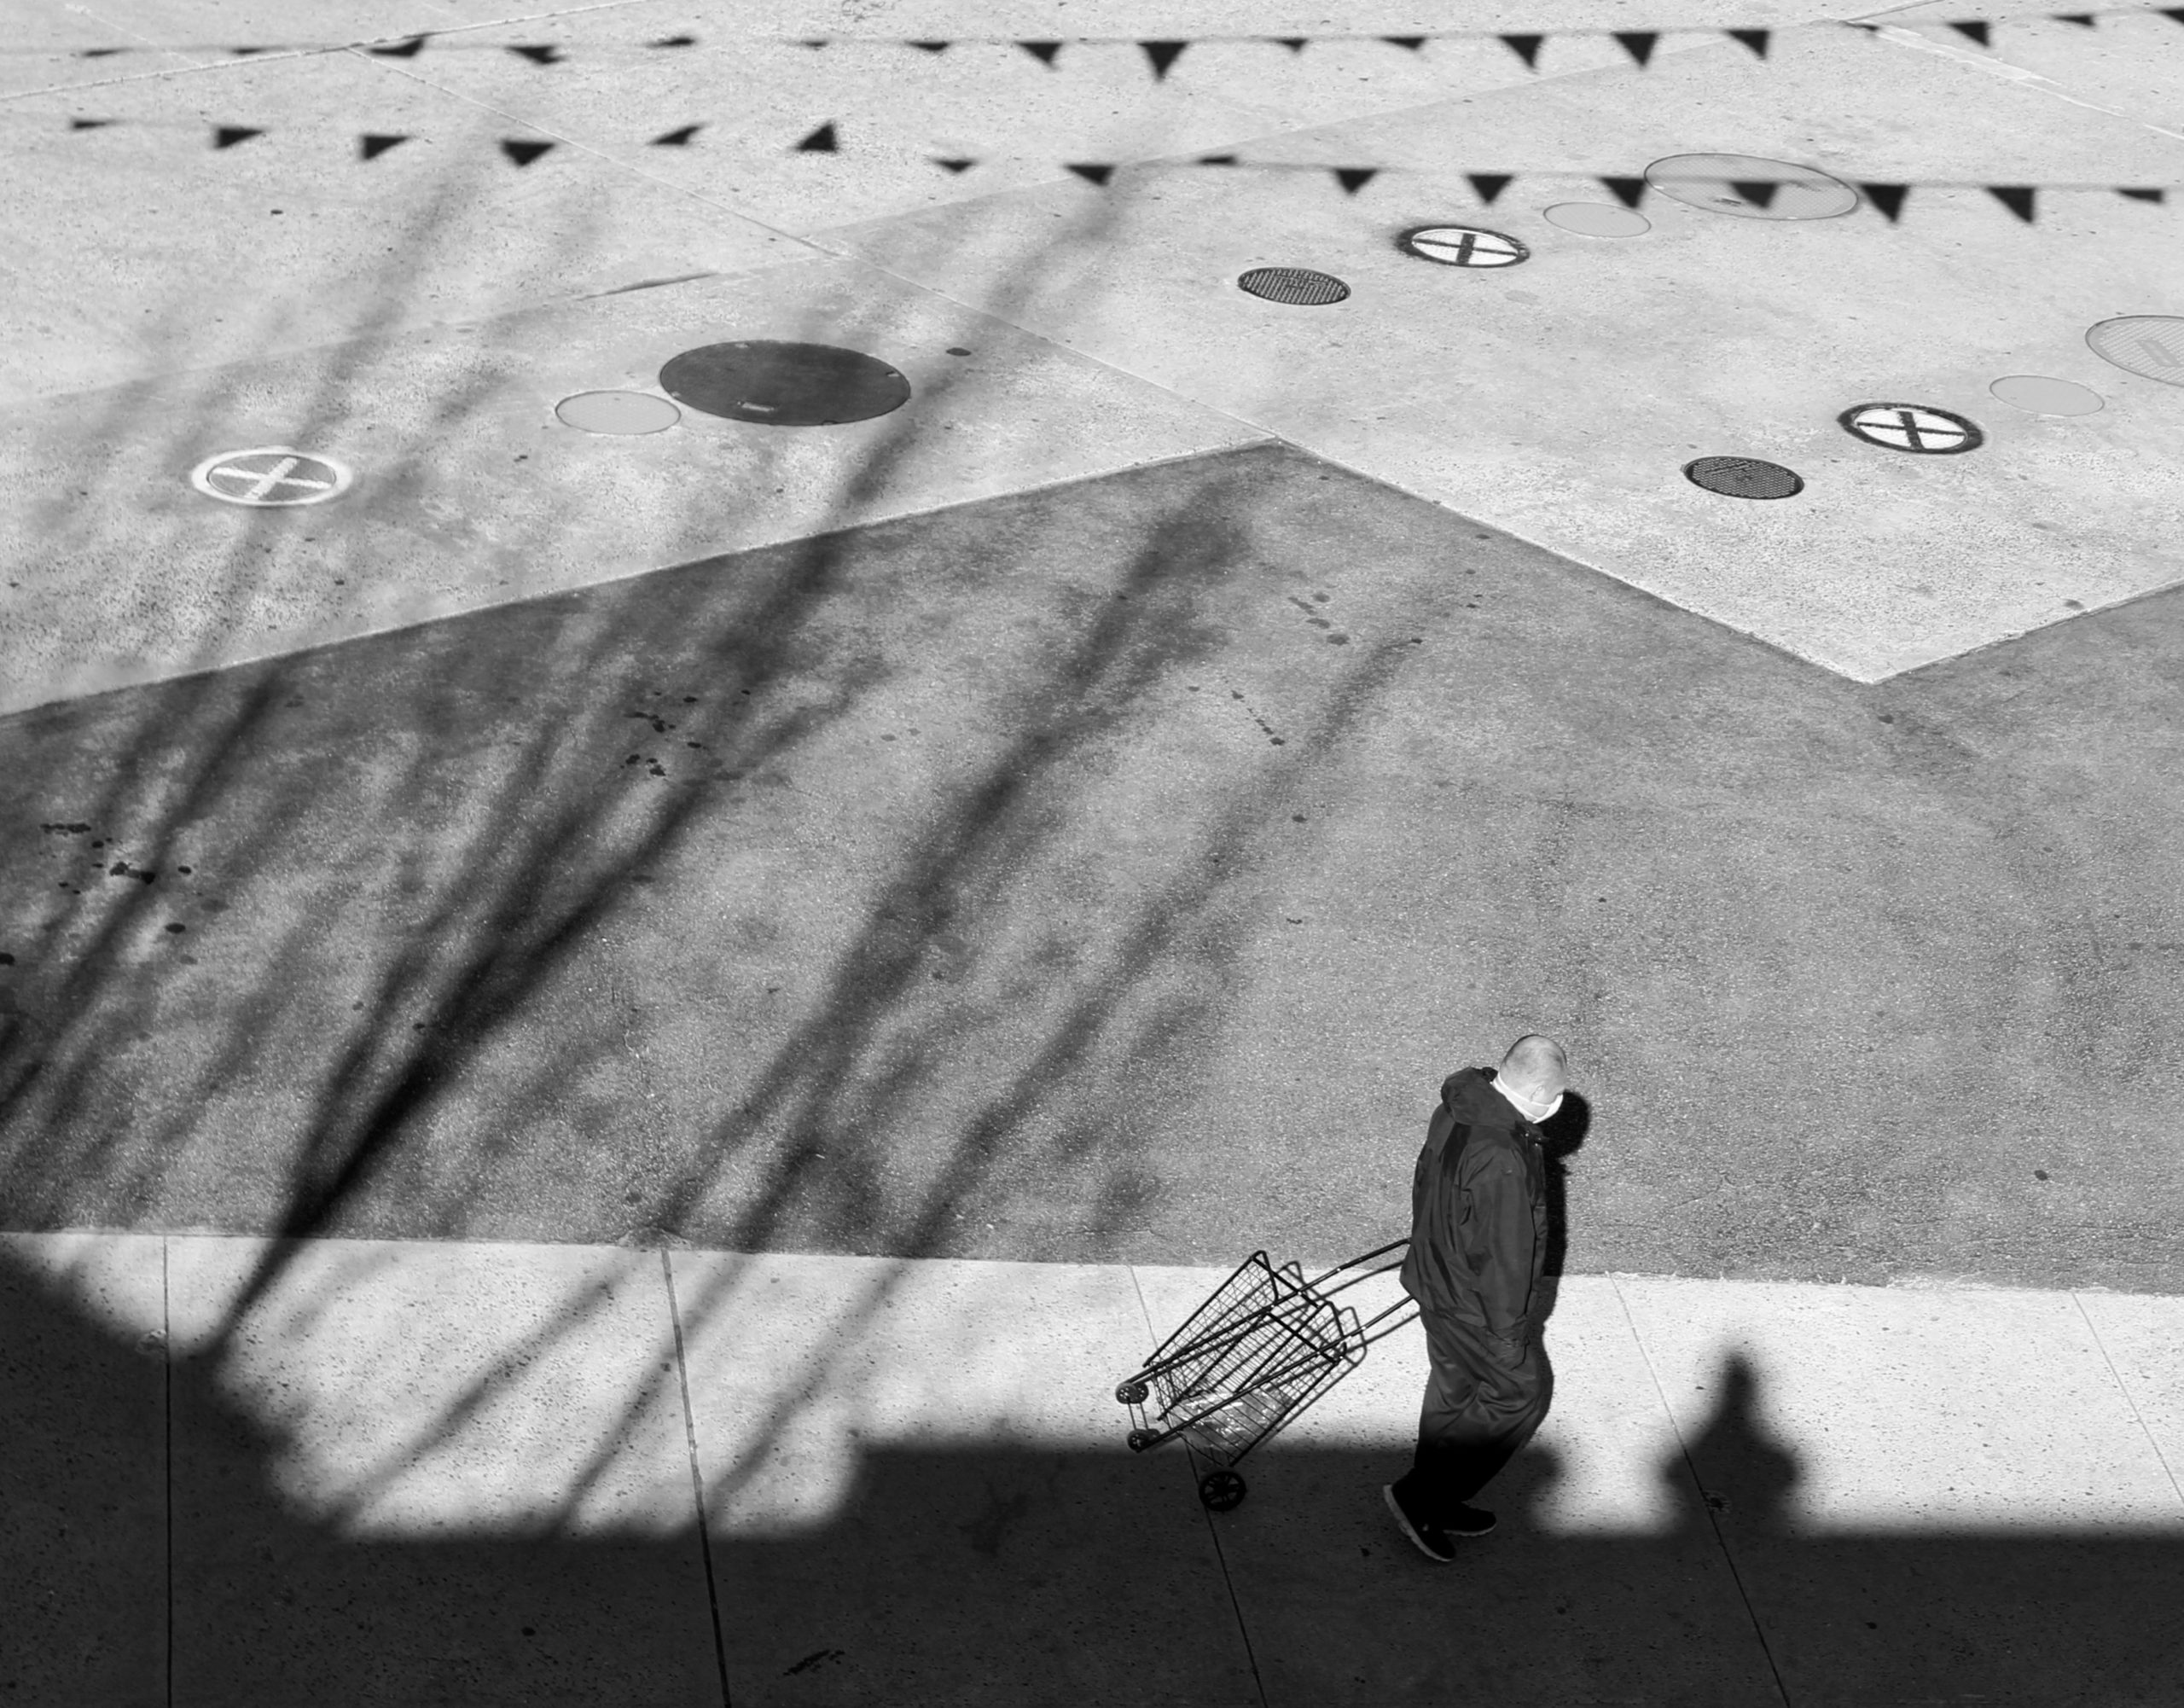 Black and White photograph taken from the rooftop, of a man walking among shadows spread across the ground